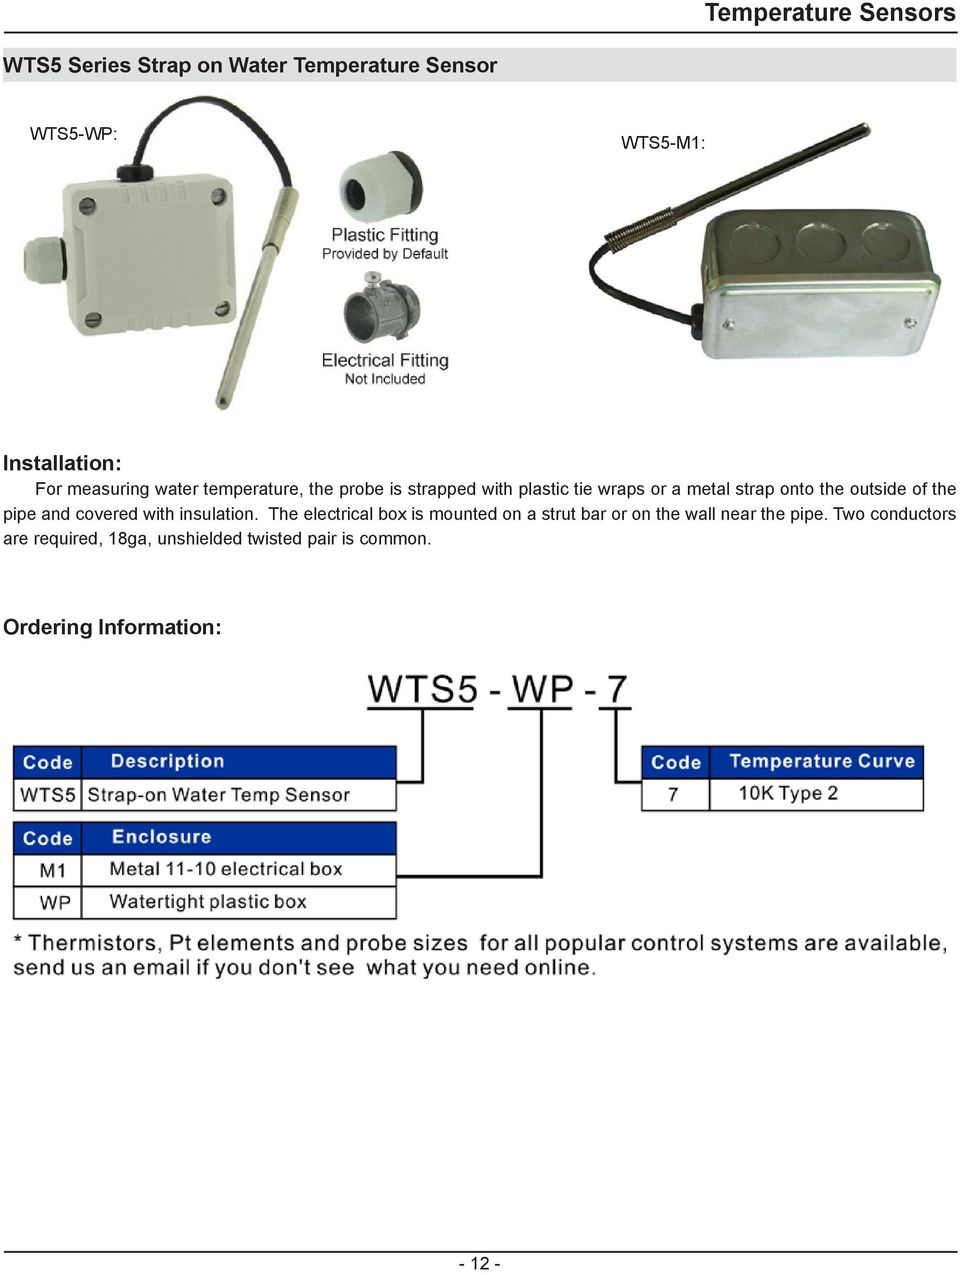 Temperature Sensors General Specification Description Pdf Water Sensor Circuit 420ma Pt100 Buy Pipe And Covered With Insulation